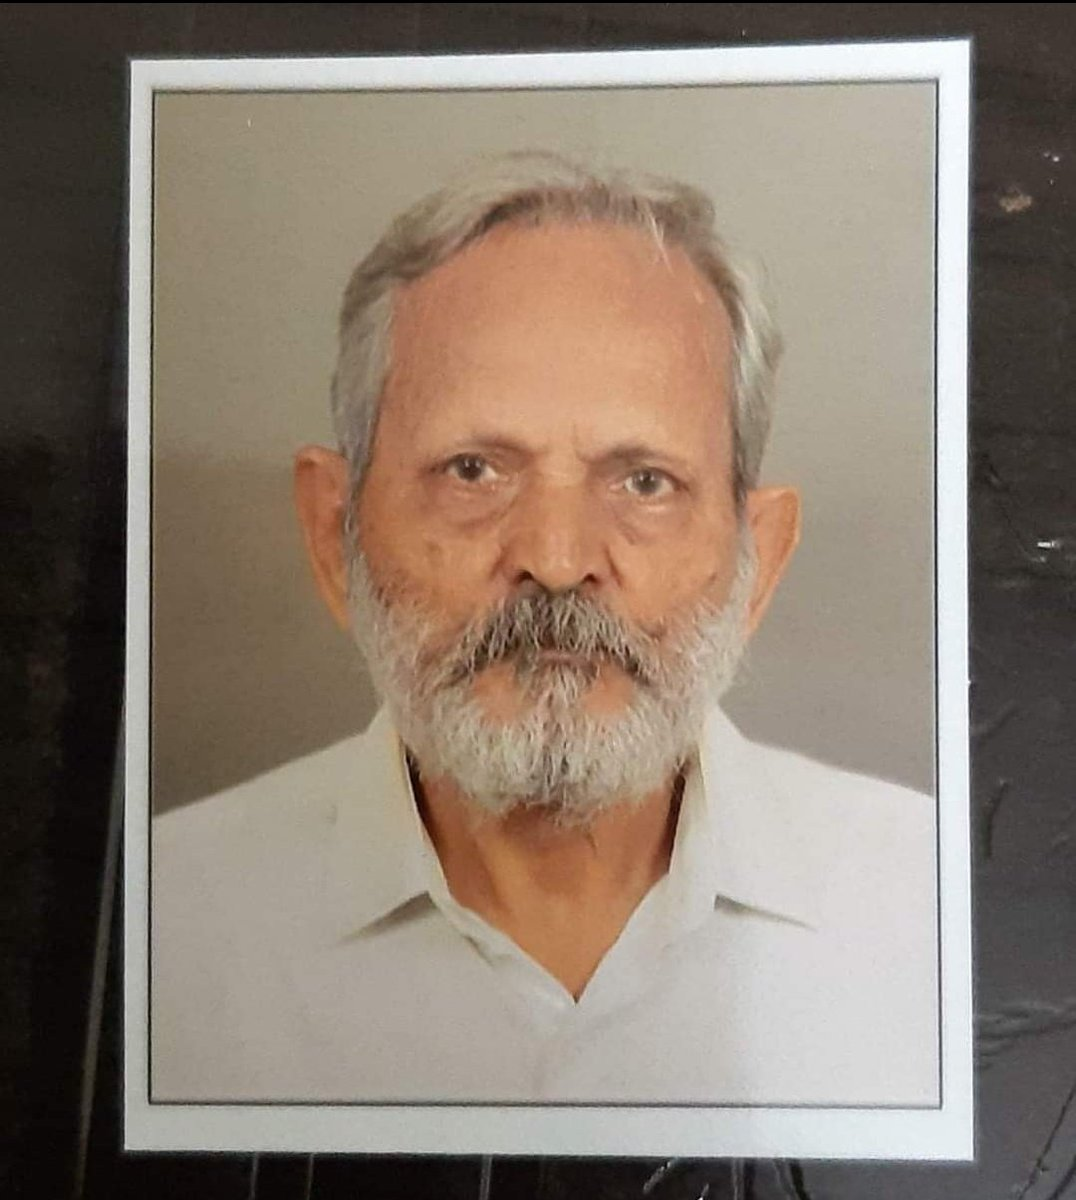 Maithili poet Ramlochan Thakur, a patient of Alzheimers, has gone #missing from his house at Italgacchia near Kolkata airport since yesterday. Police has been informed. People from #Kolkata please inform if you come across somebody looking like him #missingperson #ramlochanthakur